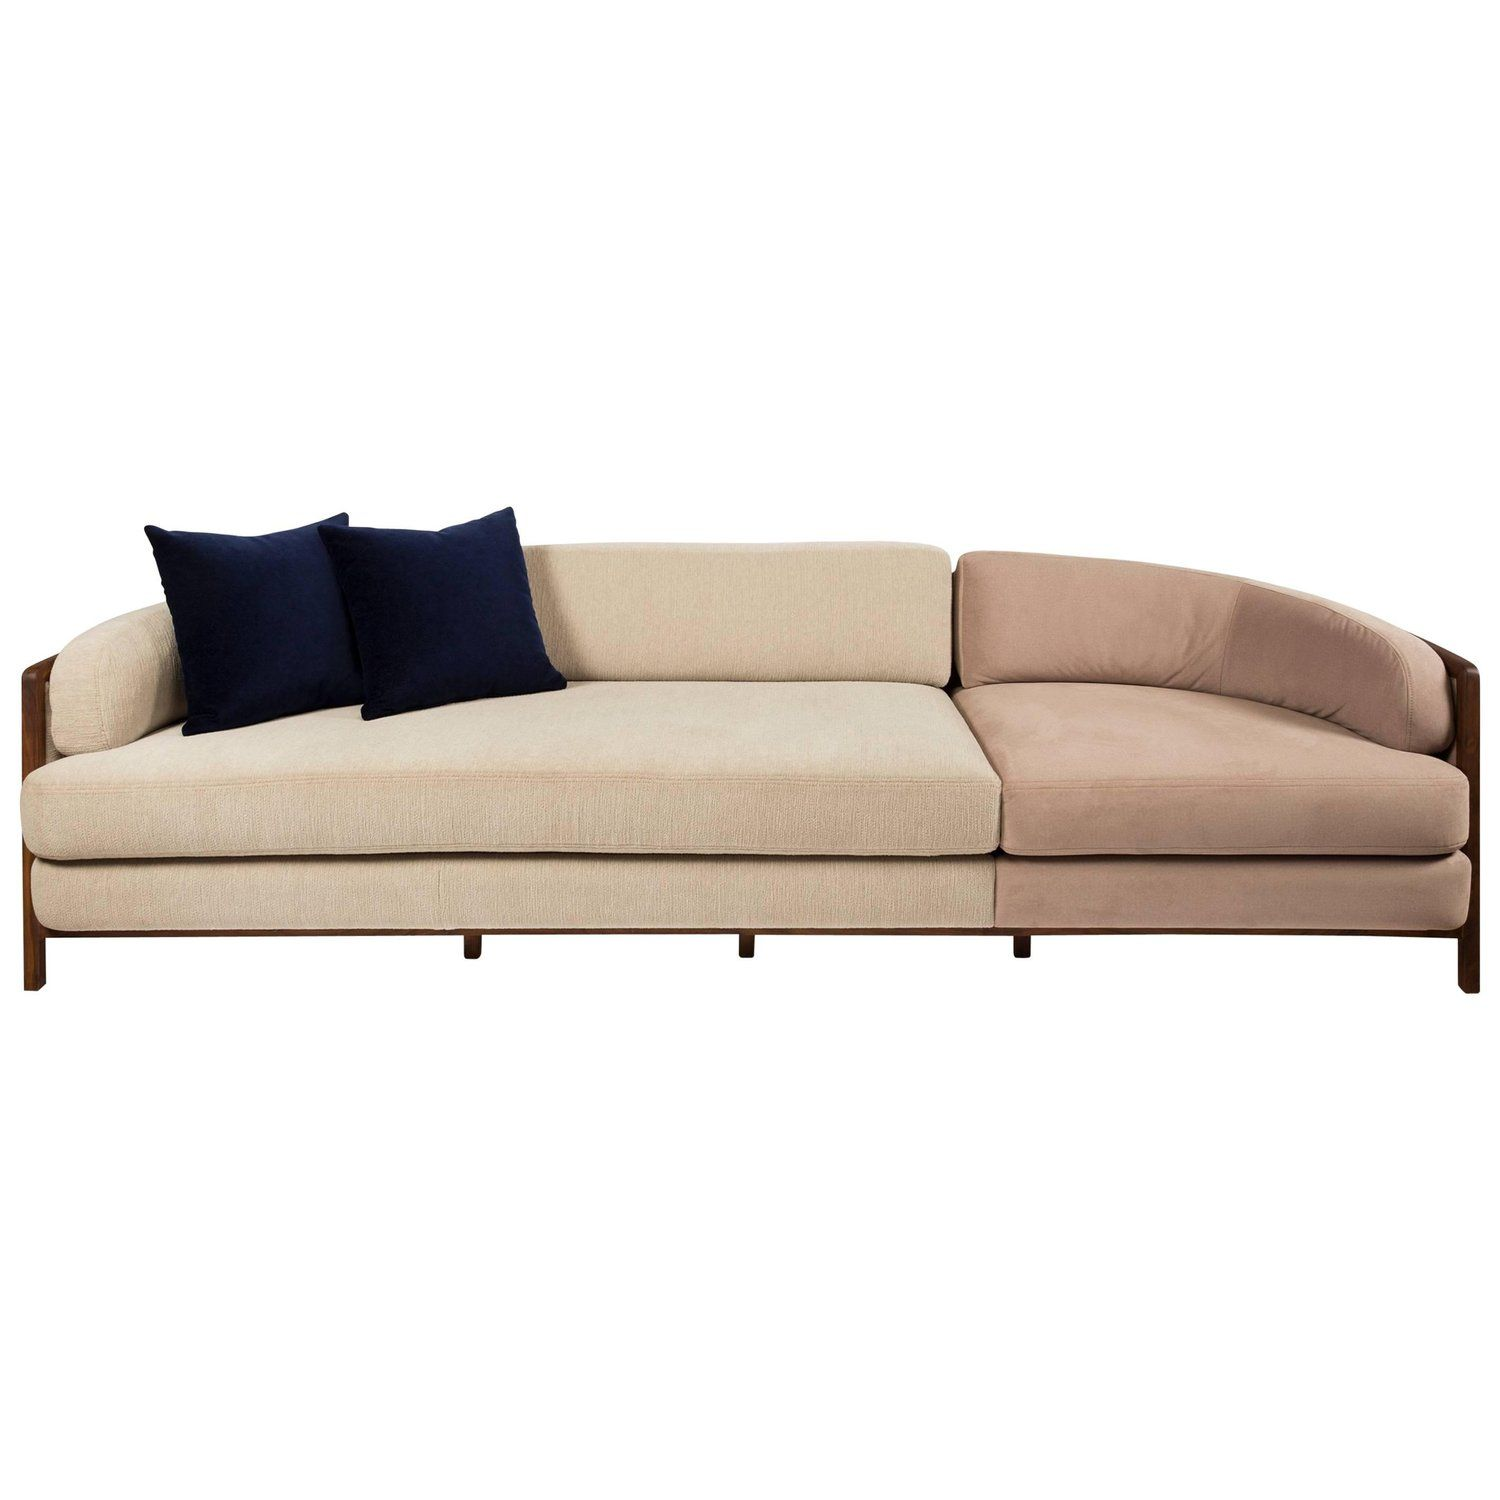 Vago Sofa In Walnut Hardwood With Wicker Back Contemporary Design